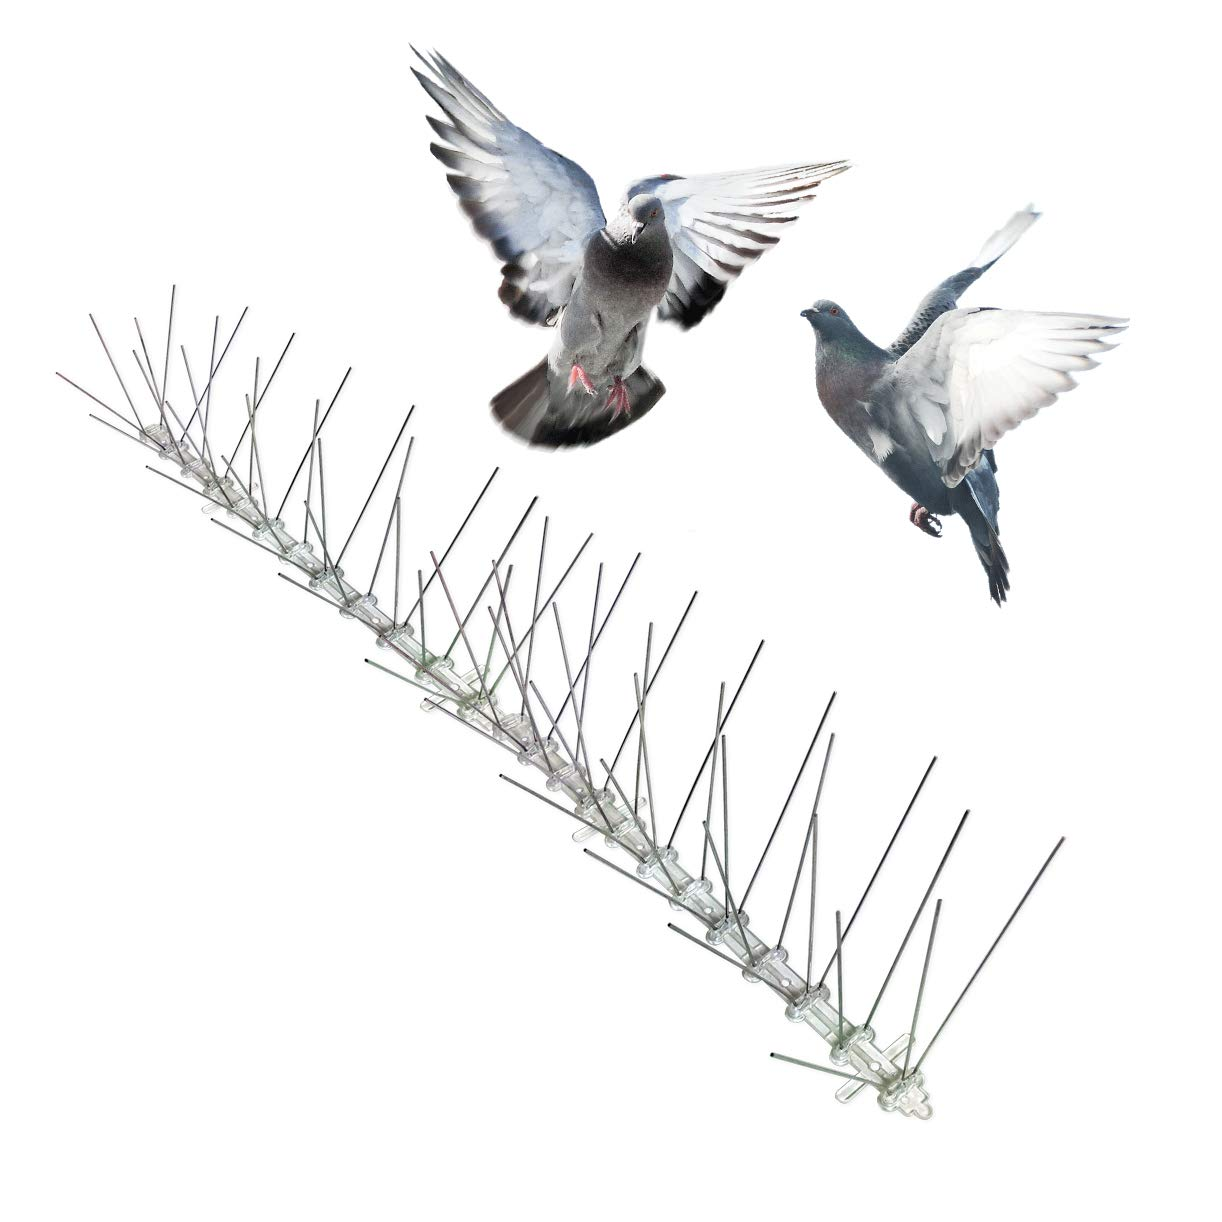 Bird-X Stainless Steel Bird Spikes Narrow, Covers 50 feet by Bird-X